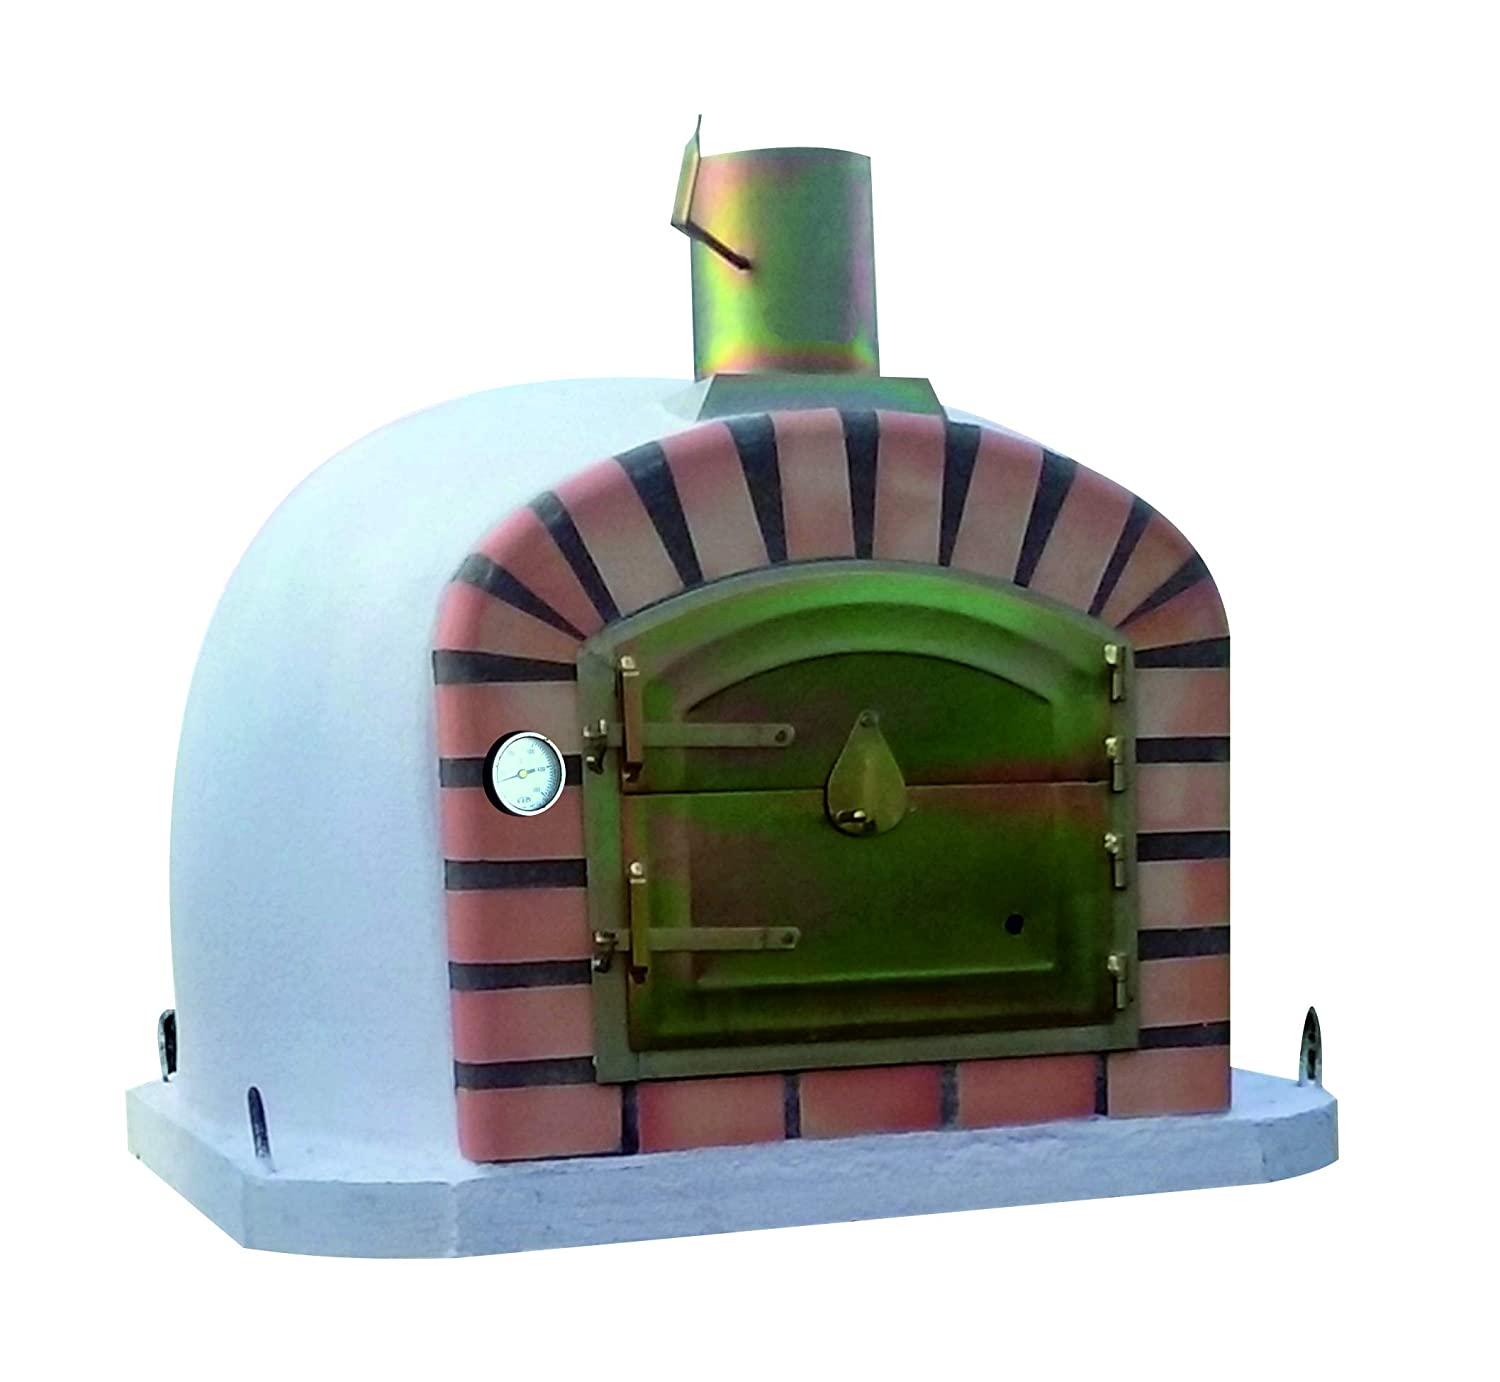 Authentic Pizza Ovens - Lisboa Traditional Wood Fire Oven